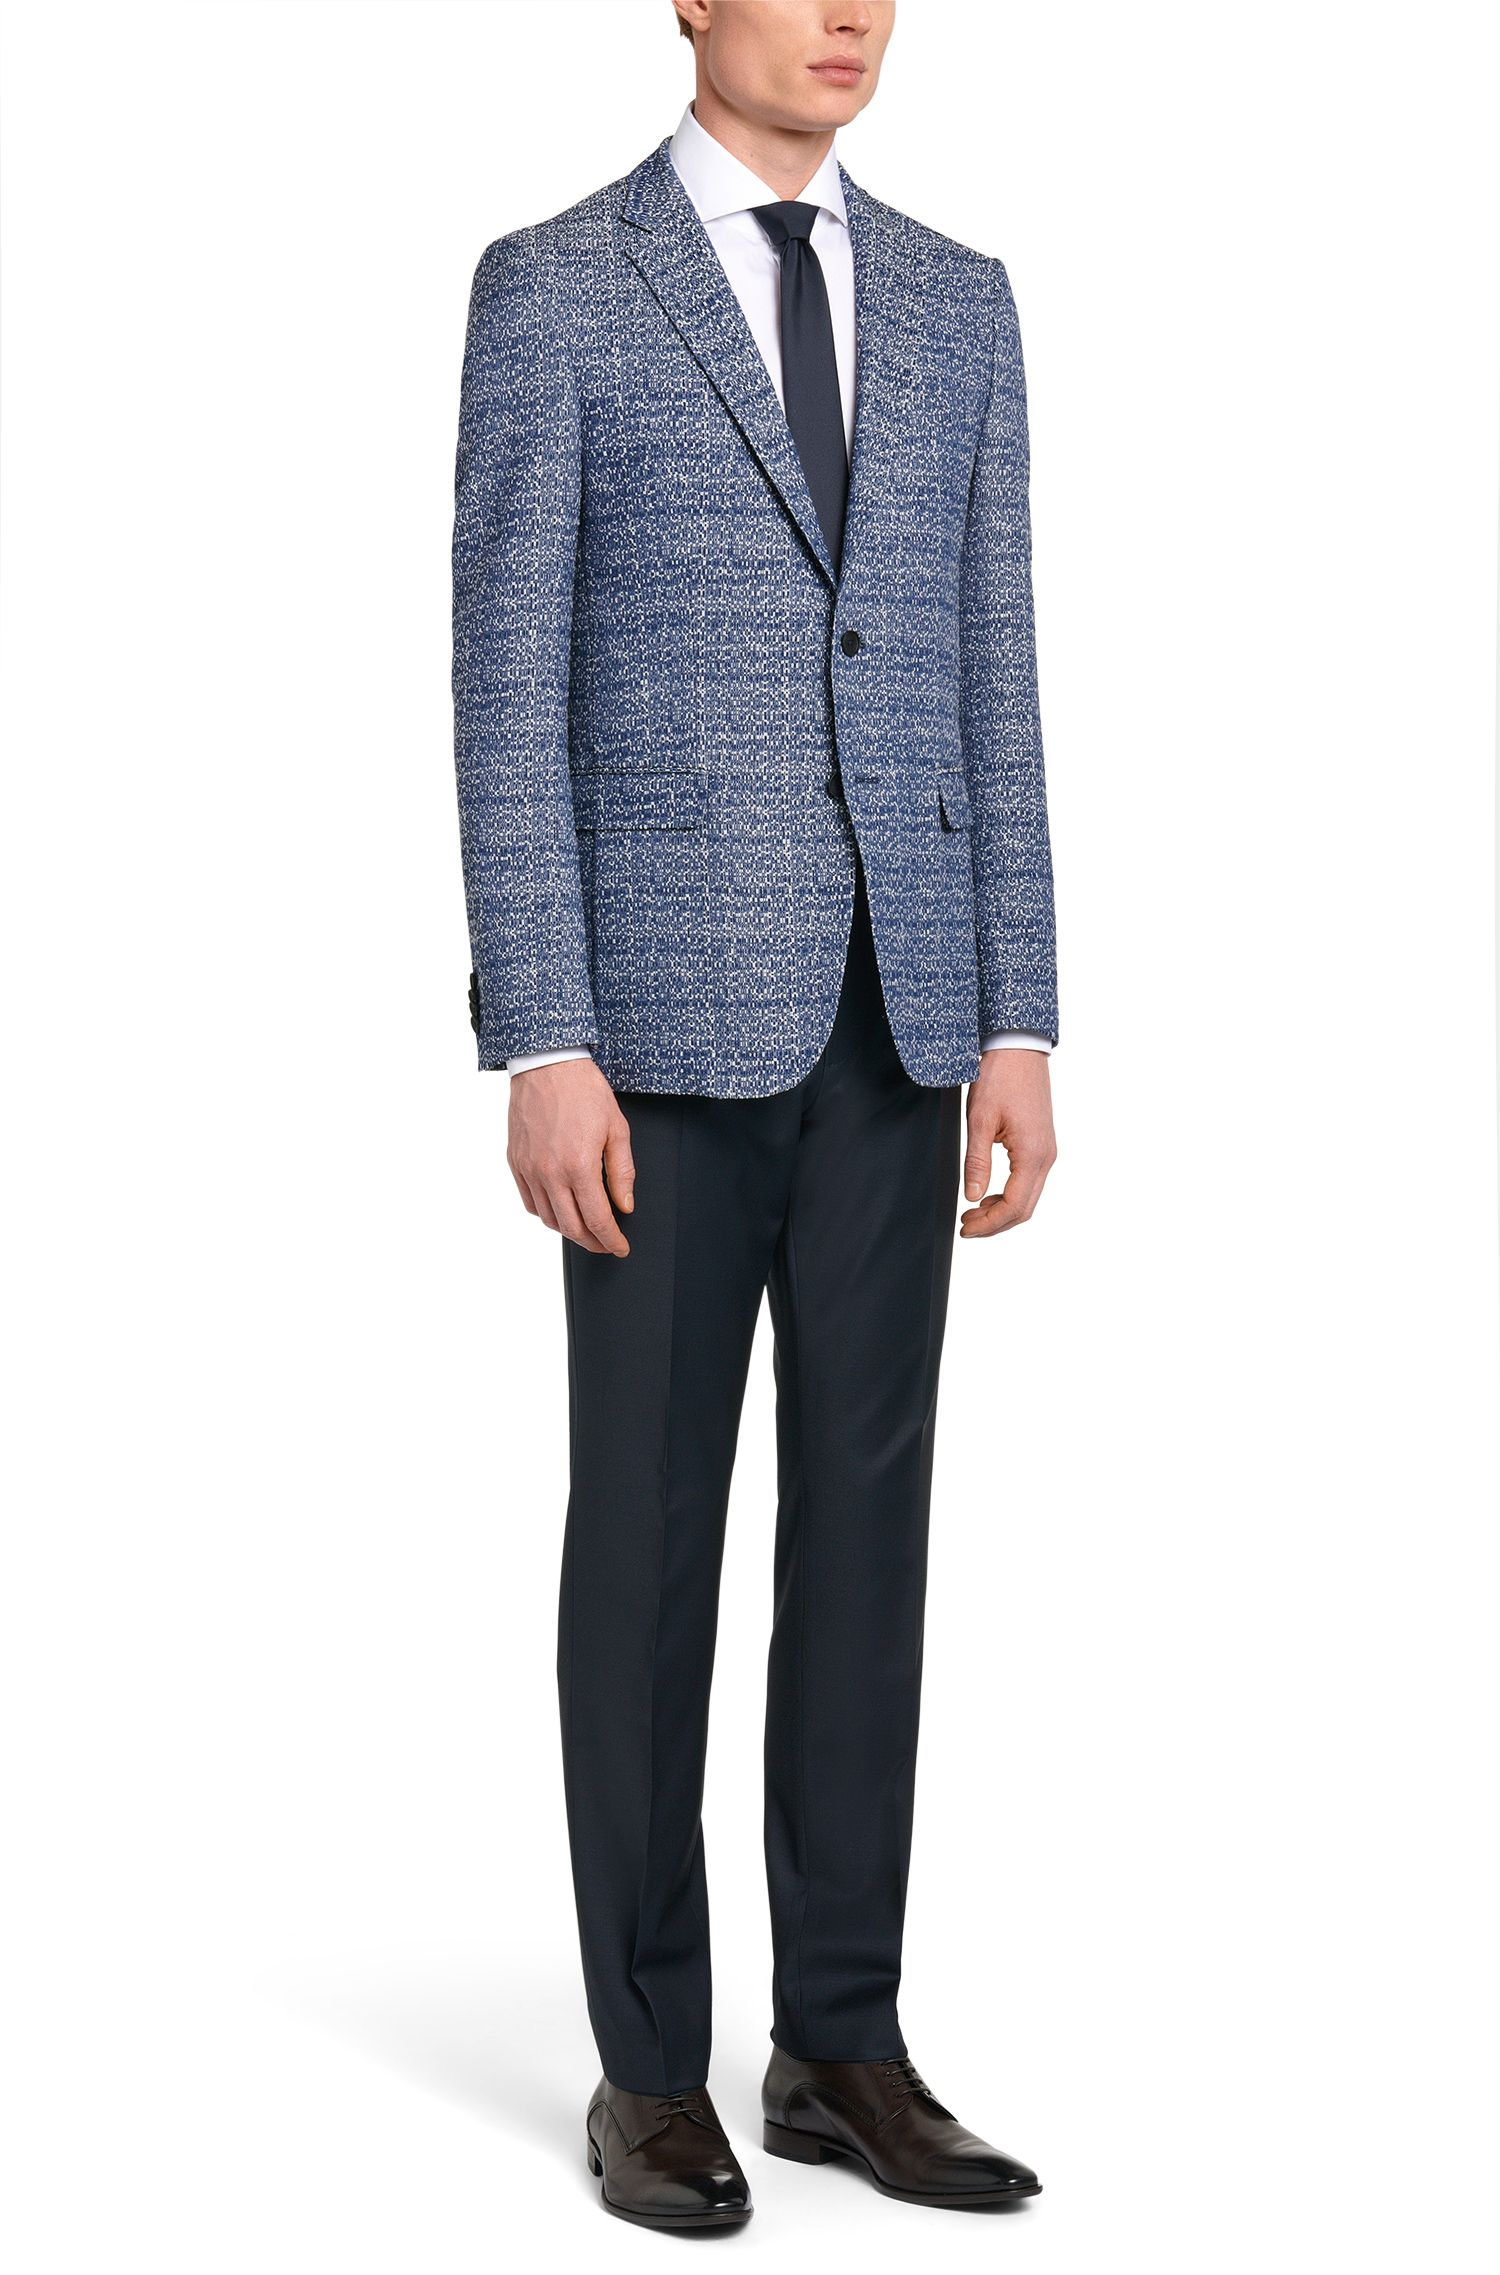 Cotton Blend Jacquard Sport Coat, Slim Fit | Nobis, Blue